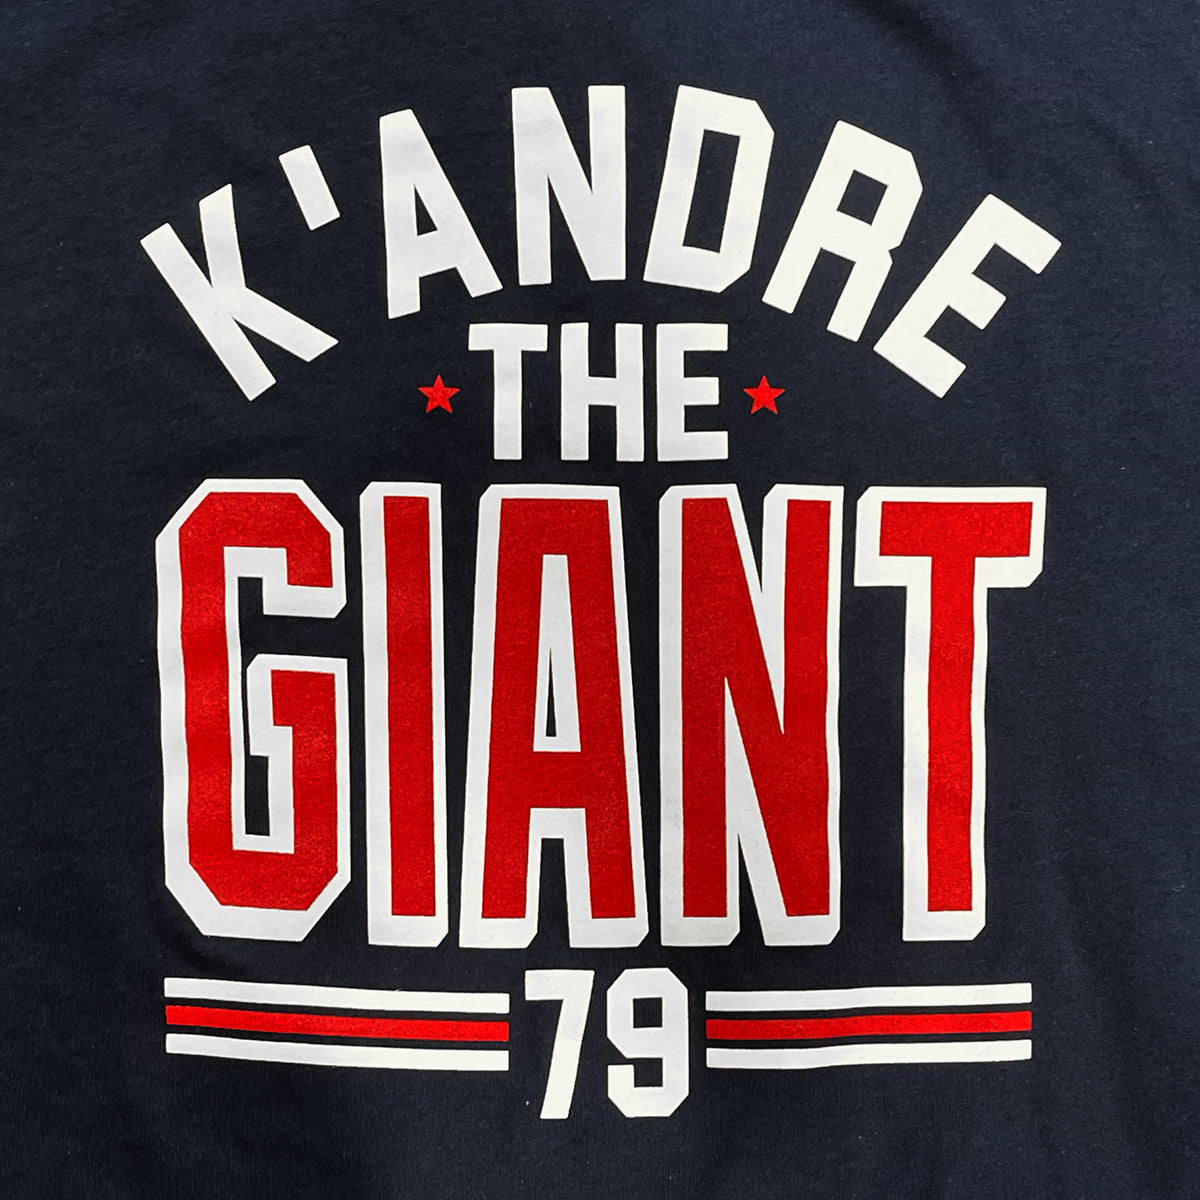 K'andre The Giant | Men's Tee